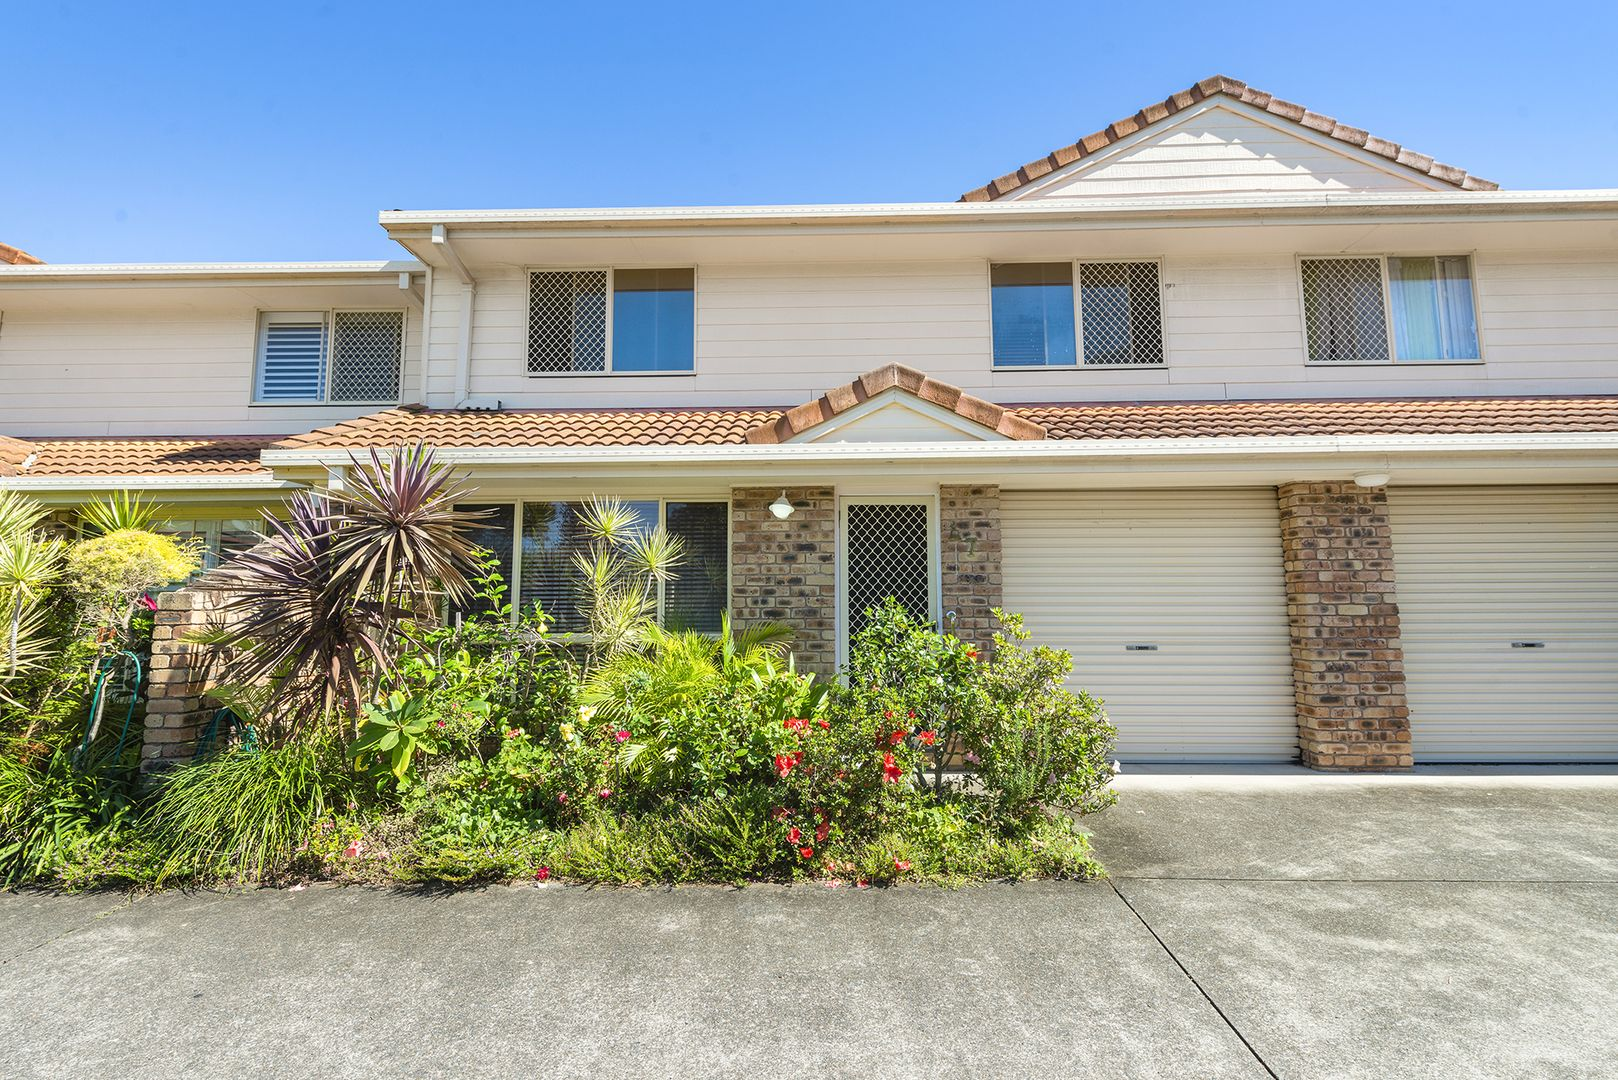 7/199 Kennedy Drive, Tweed Heads West NSW 2485, Image 0